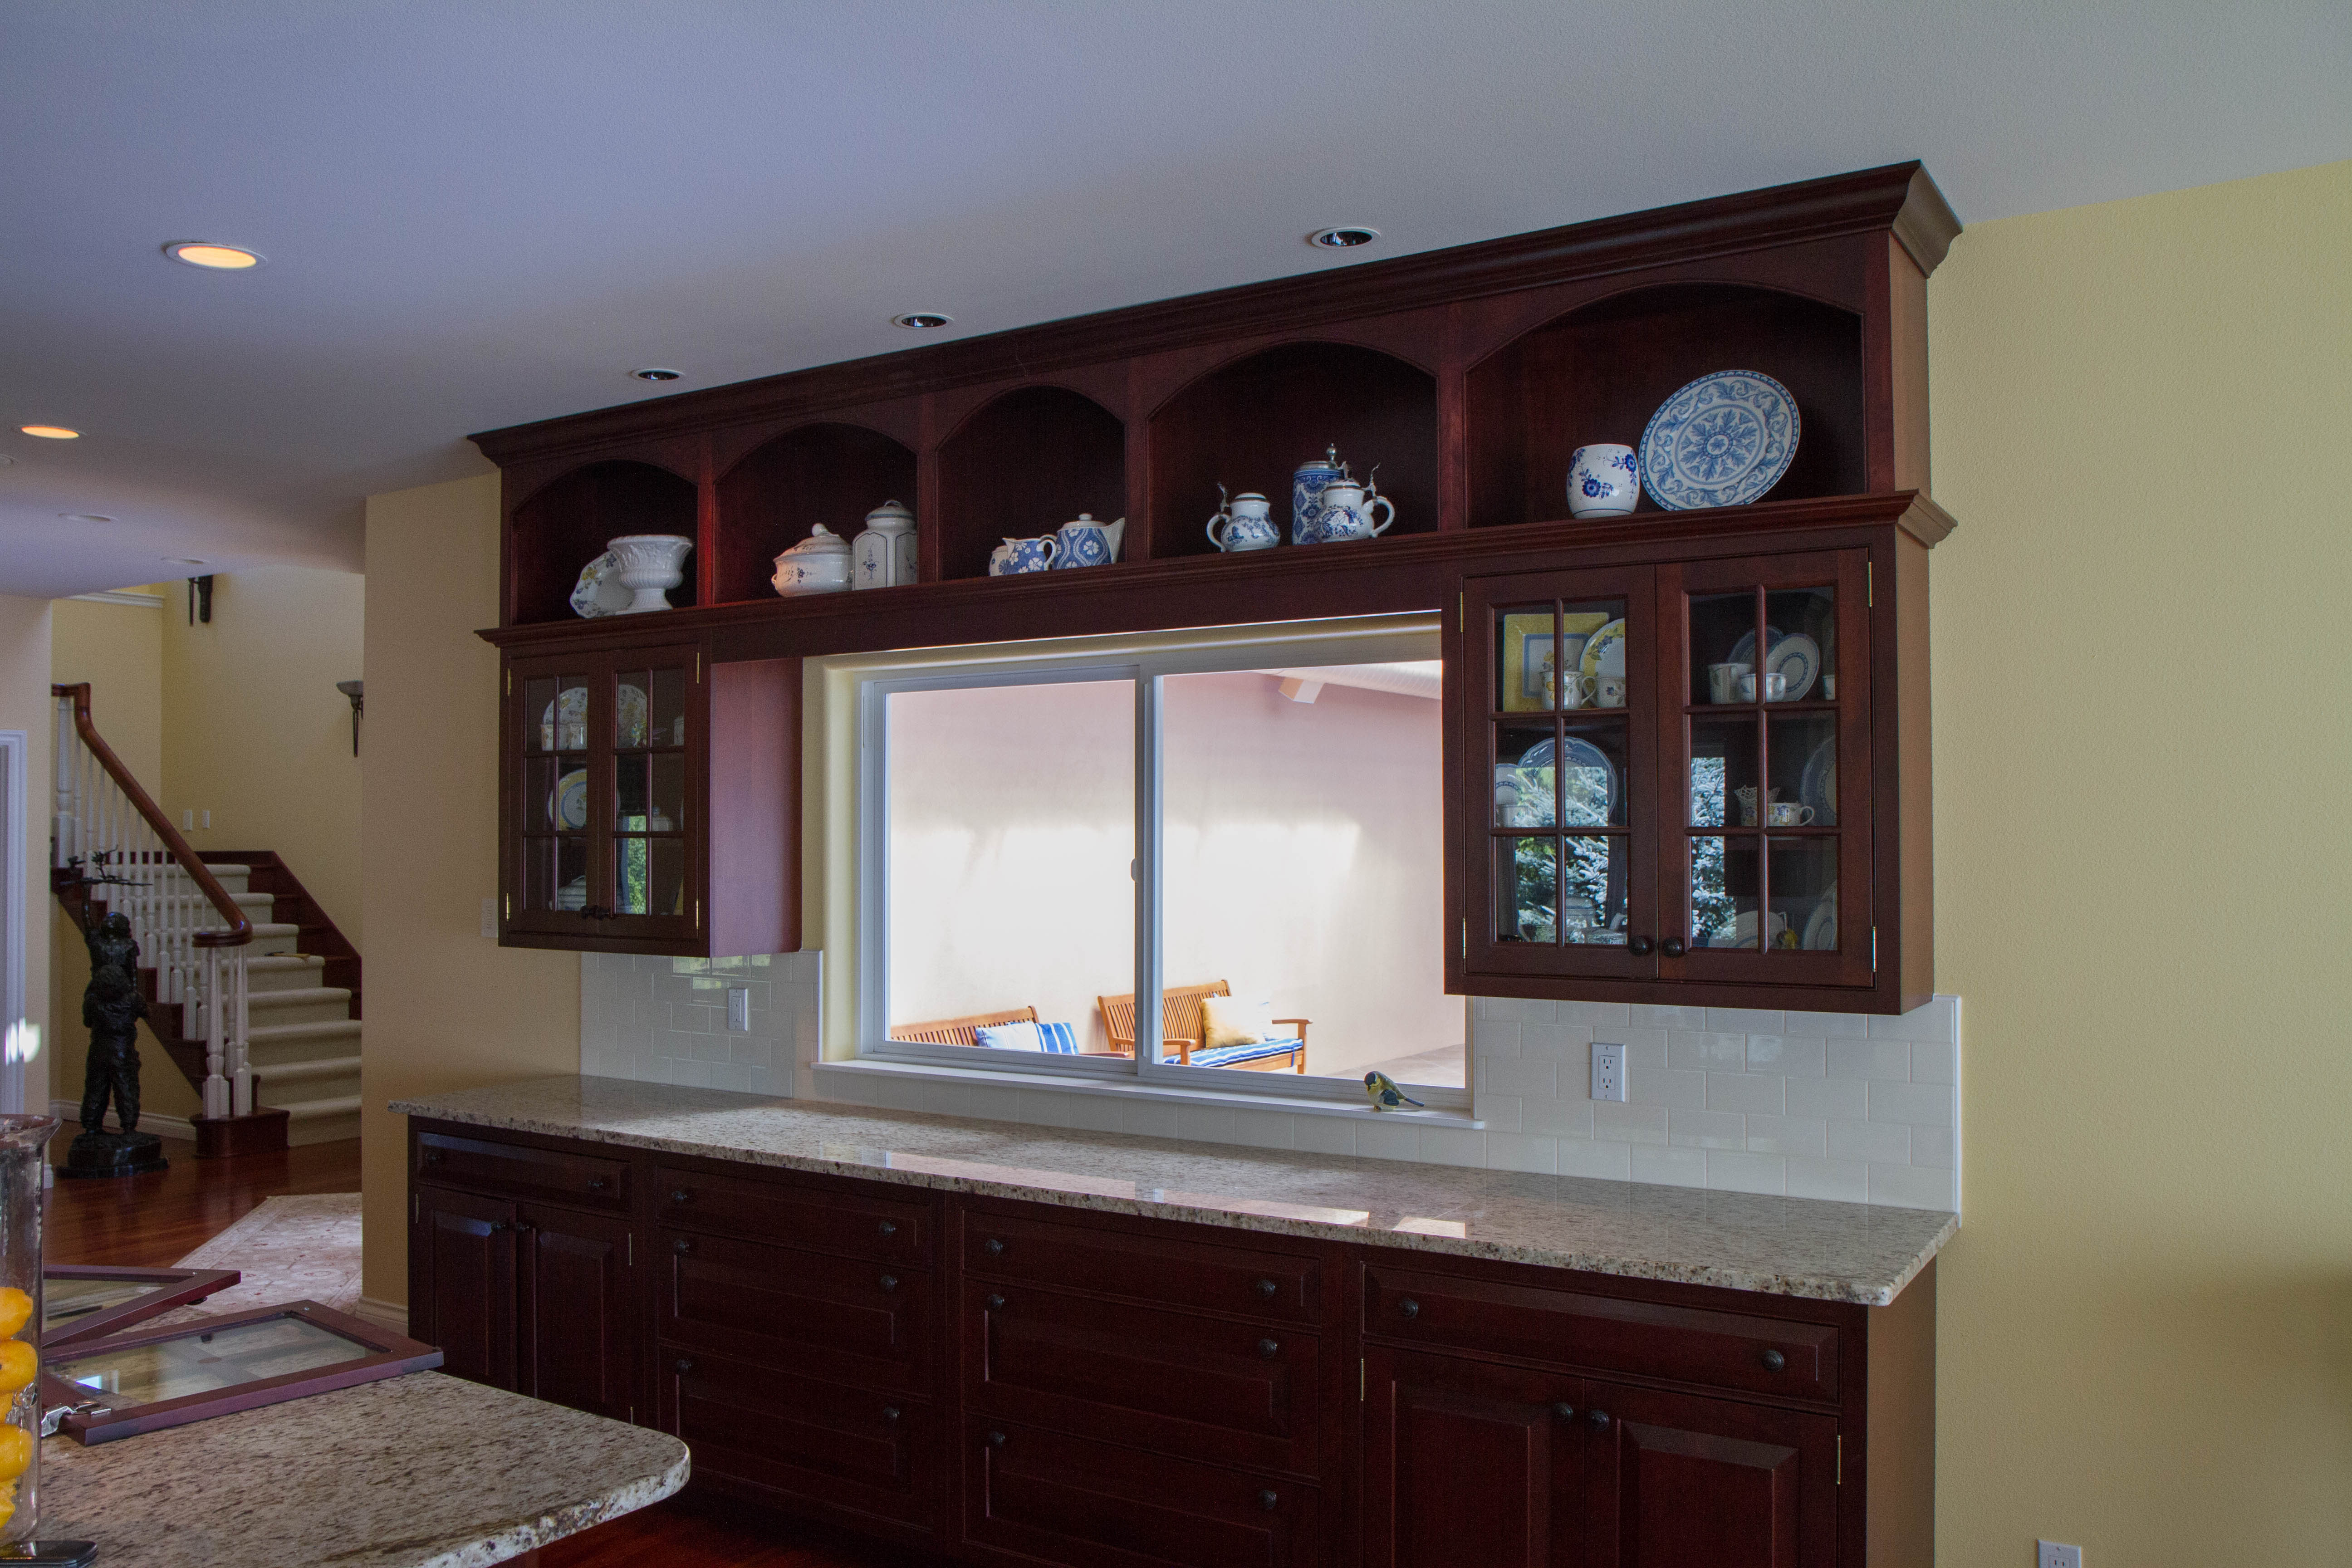 Matching Existing Cabinets